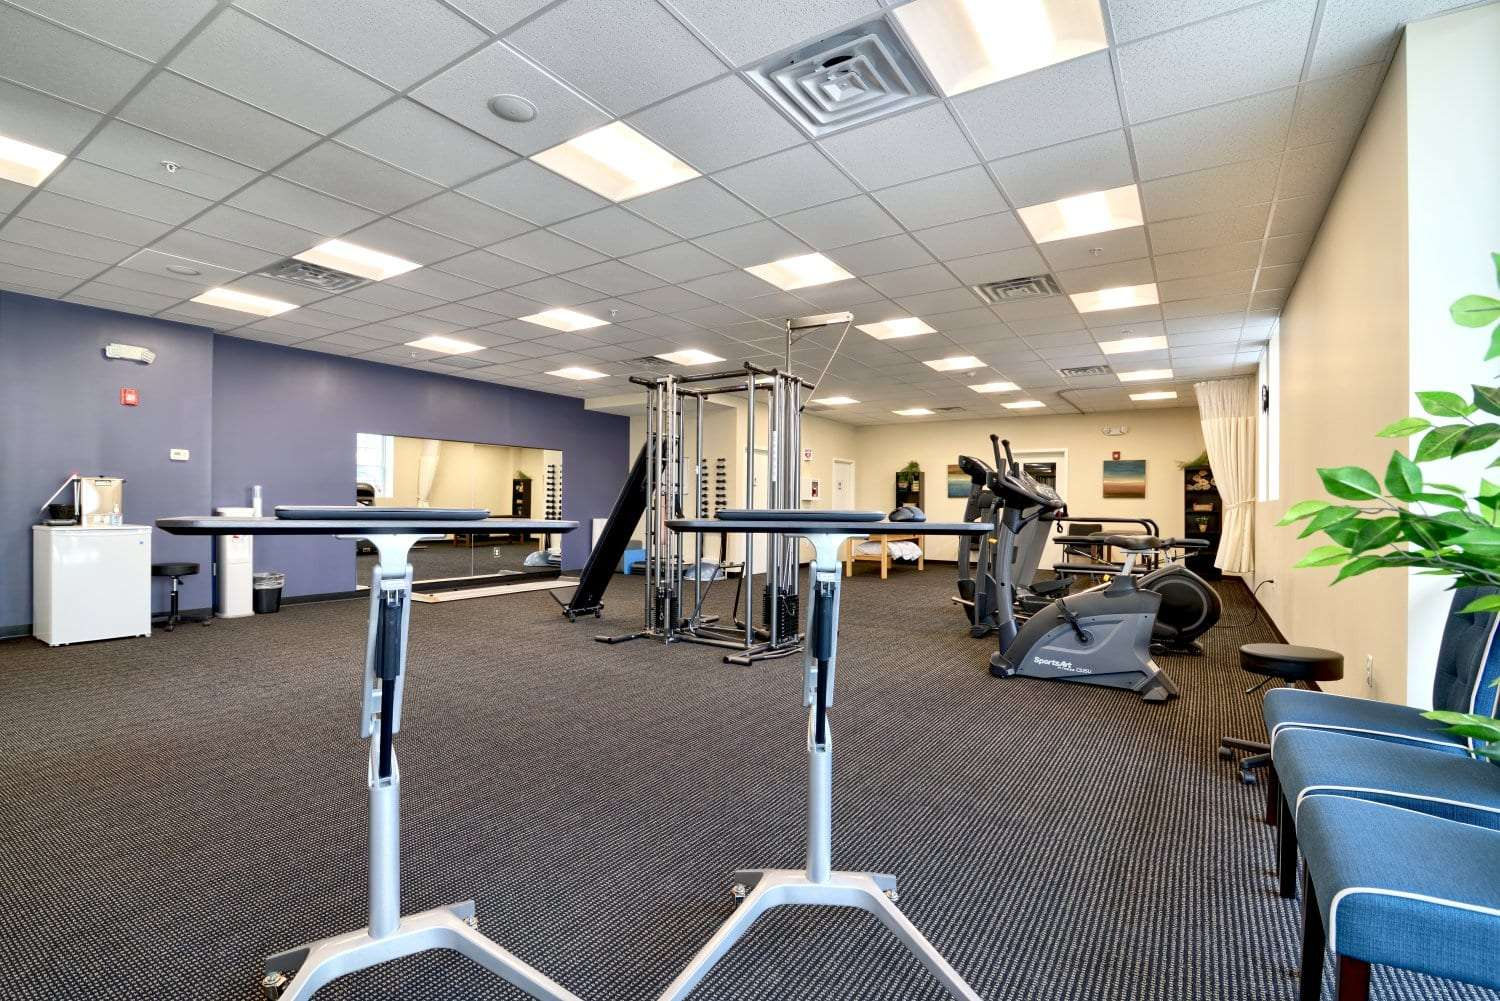 An image showcasing the equipment at our physical therapy clinic in Waltham, Massachusetts.